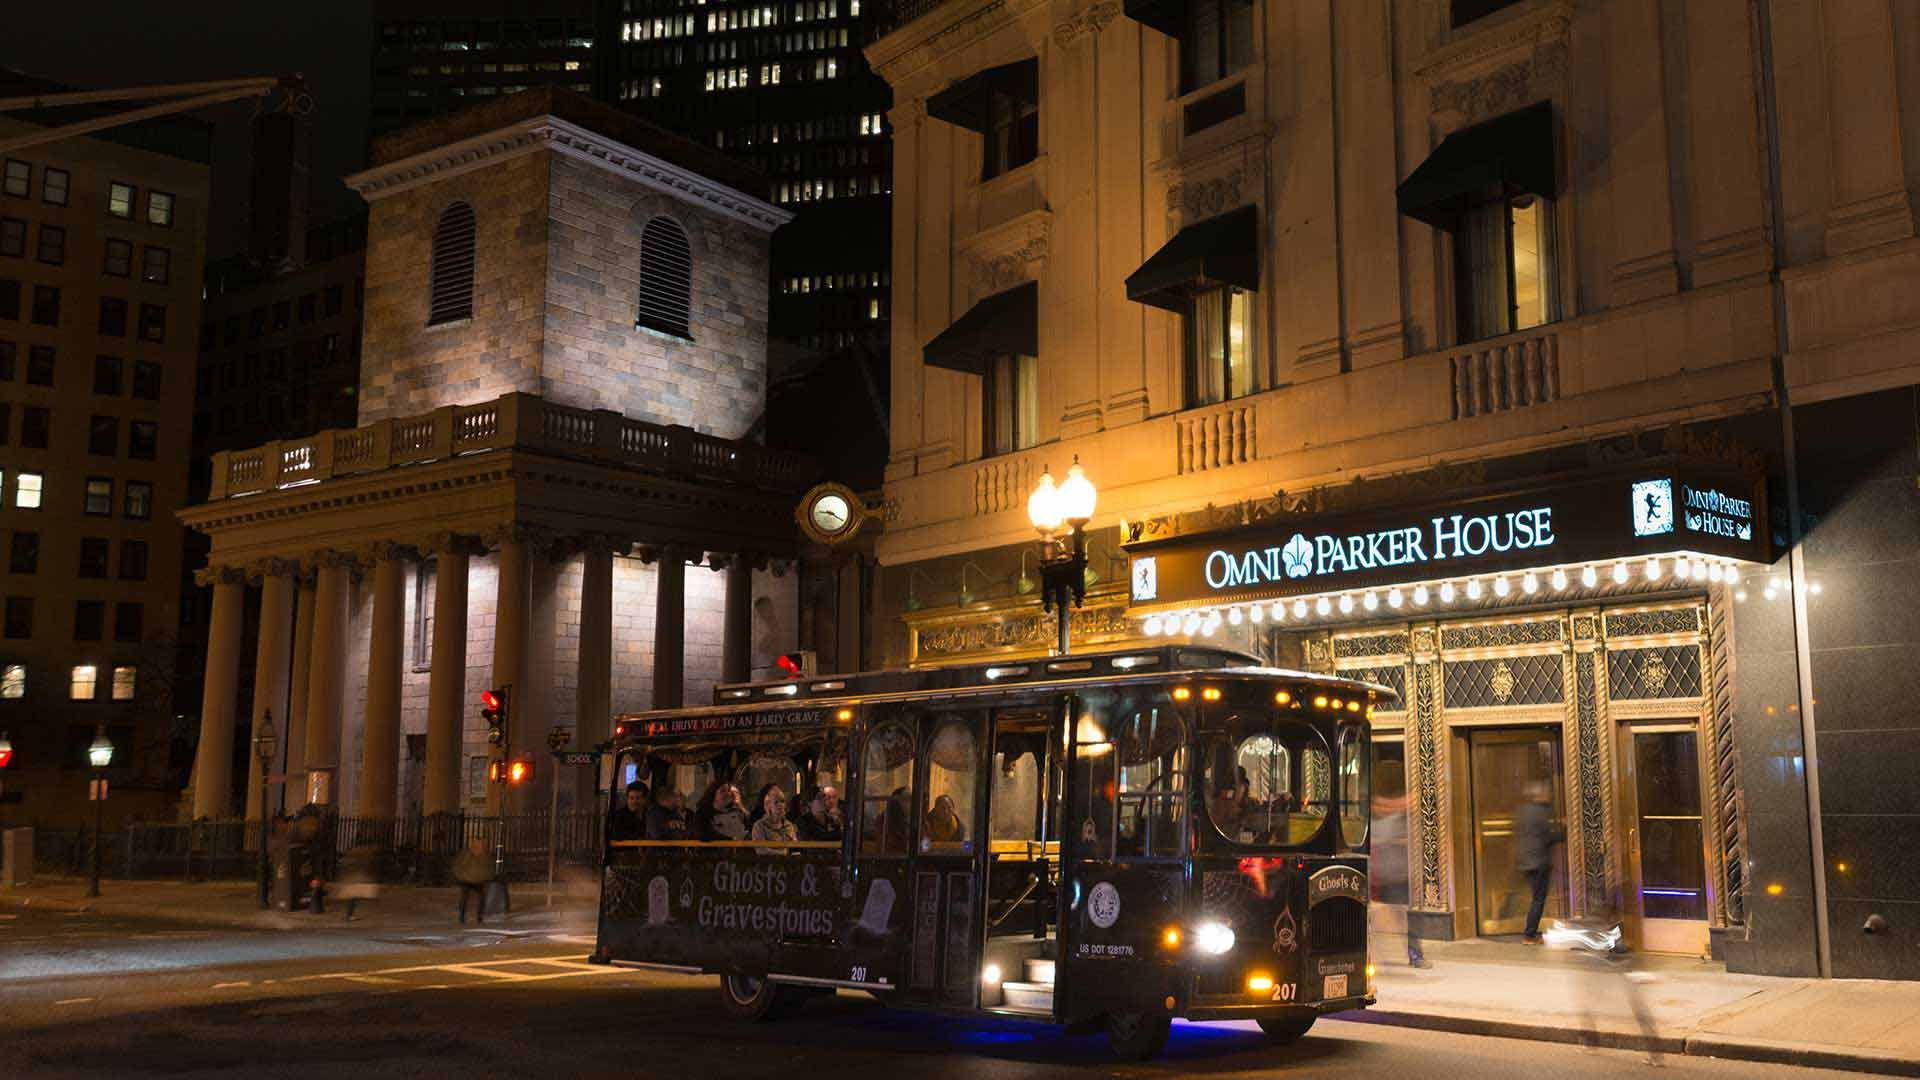 boston ghost tour trolley in front of omni parker house